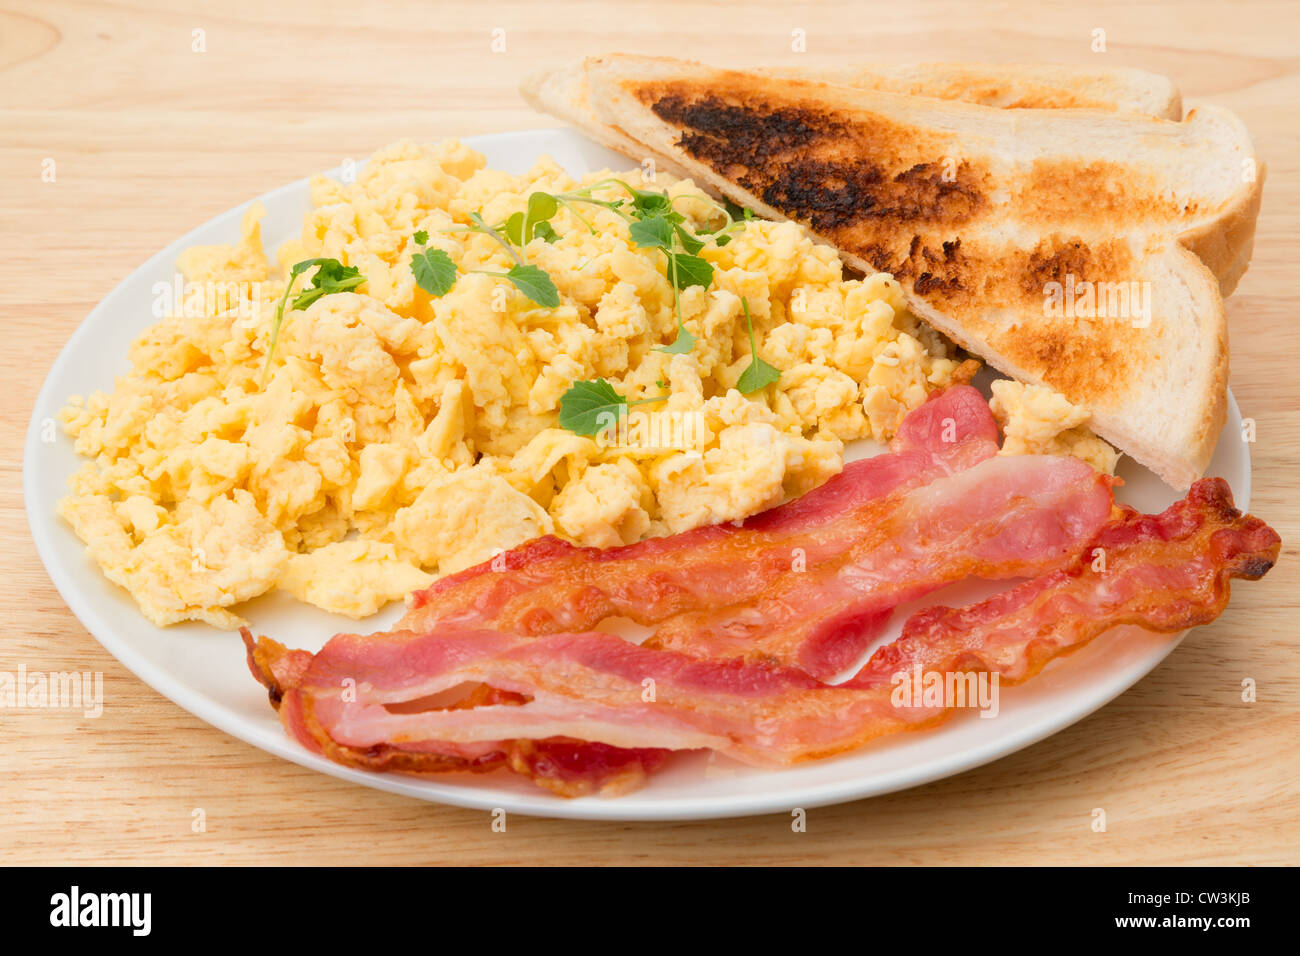 Scrambled eggs with streaky bacon breakfast with slices of toast - studio shot - Stock Image